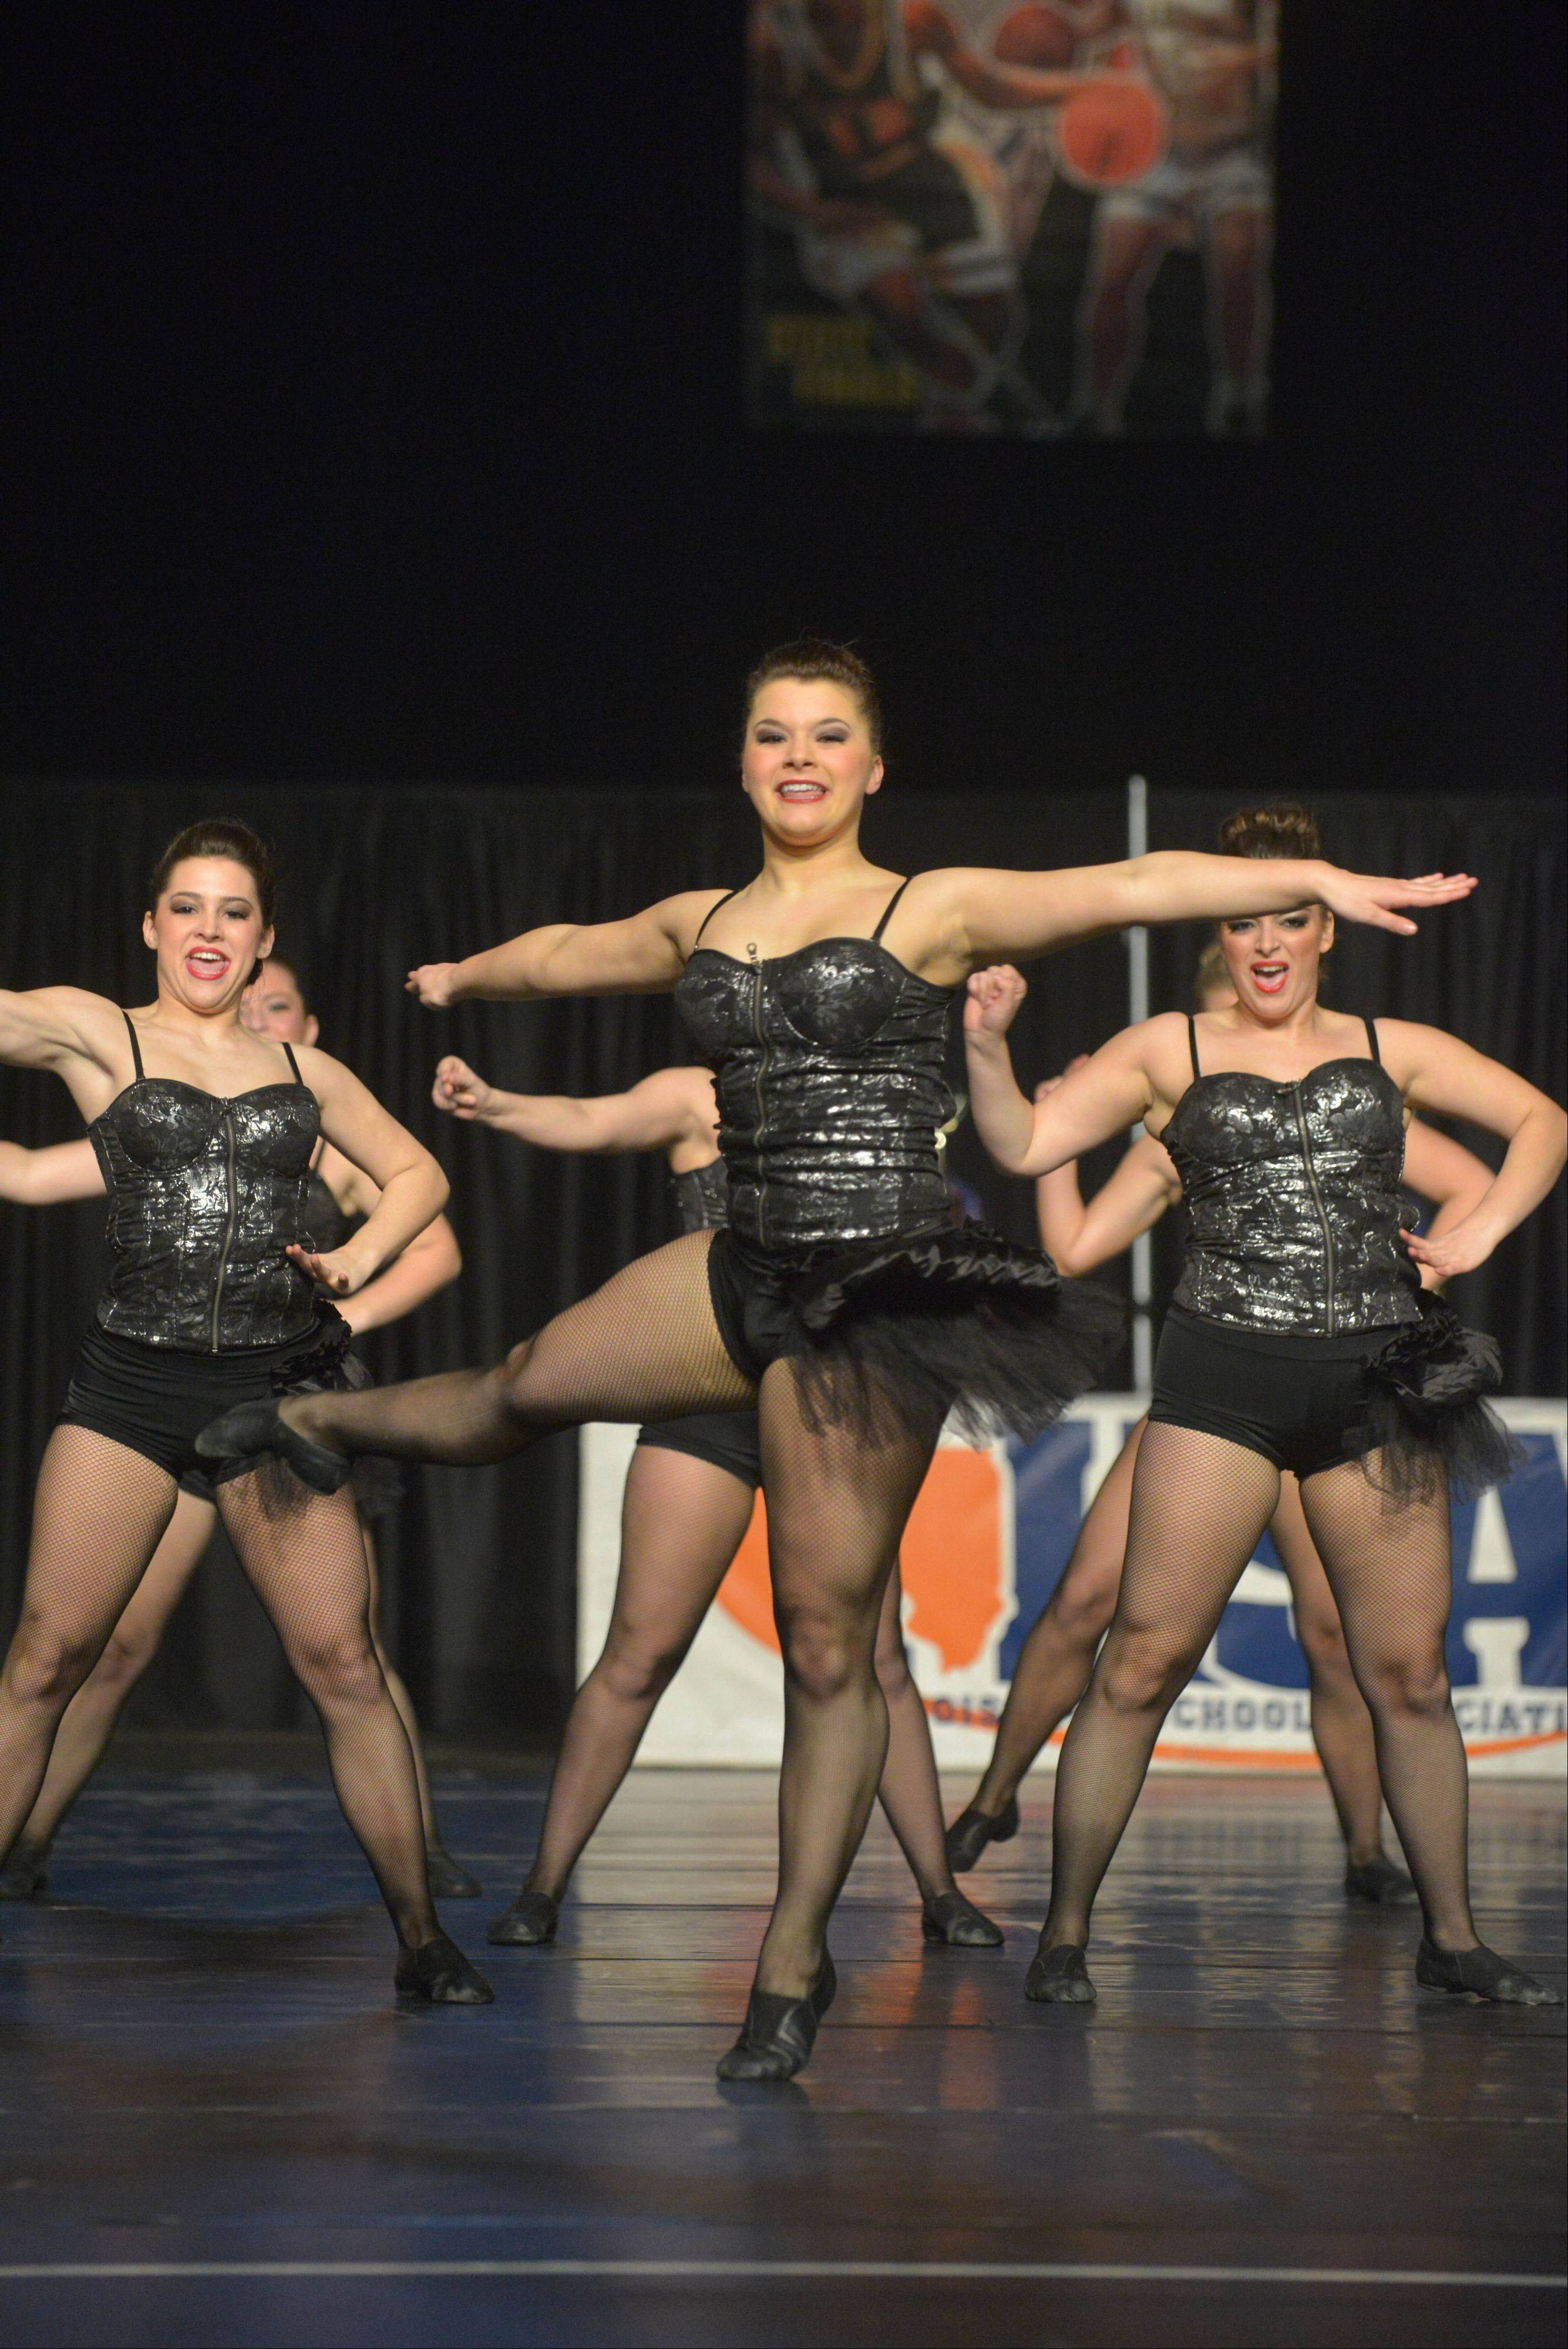 Lake Park High School took part in the IHSA Dance State Final at U.S. Cellular Coliseum in Bloomington Saturday. 90 teams vied for state champion at this event.